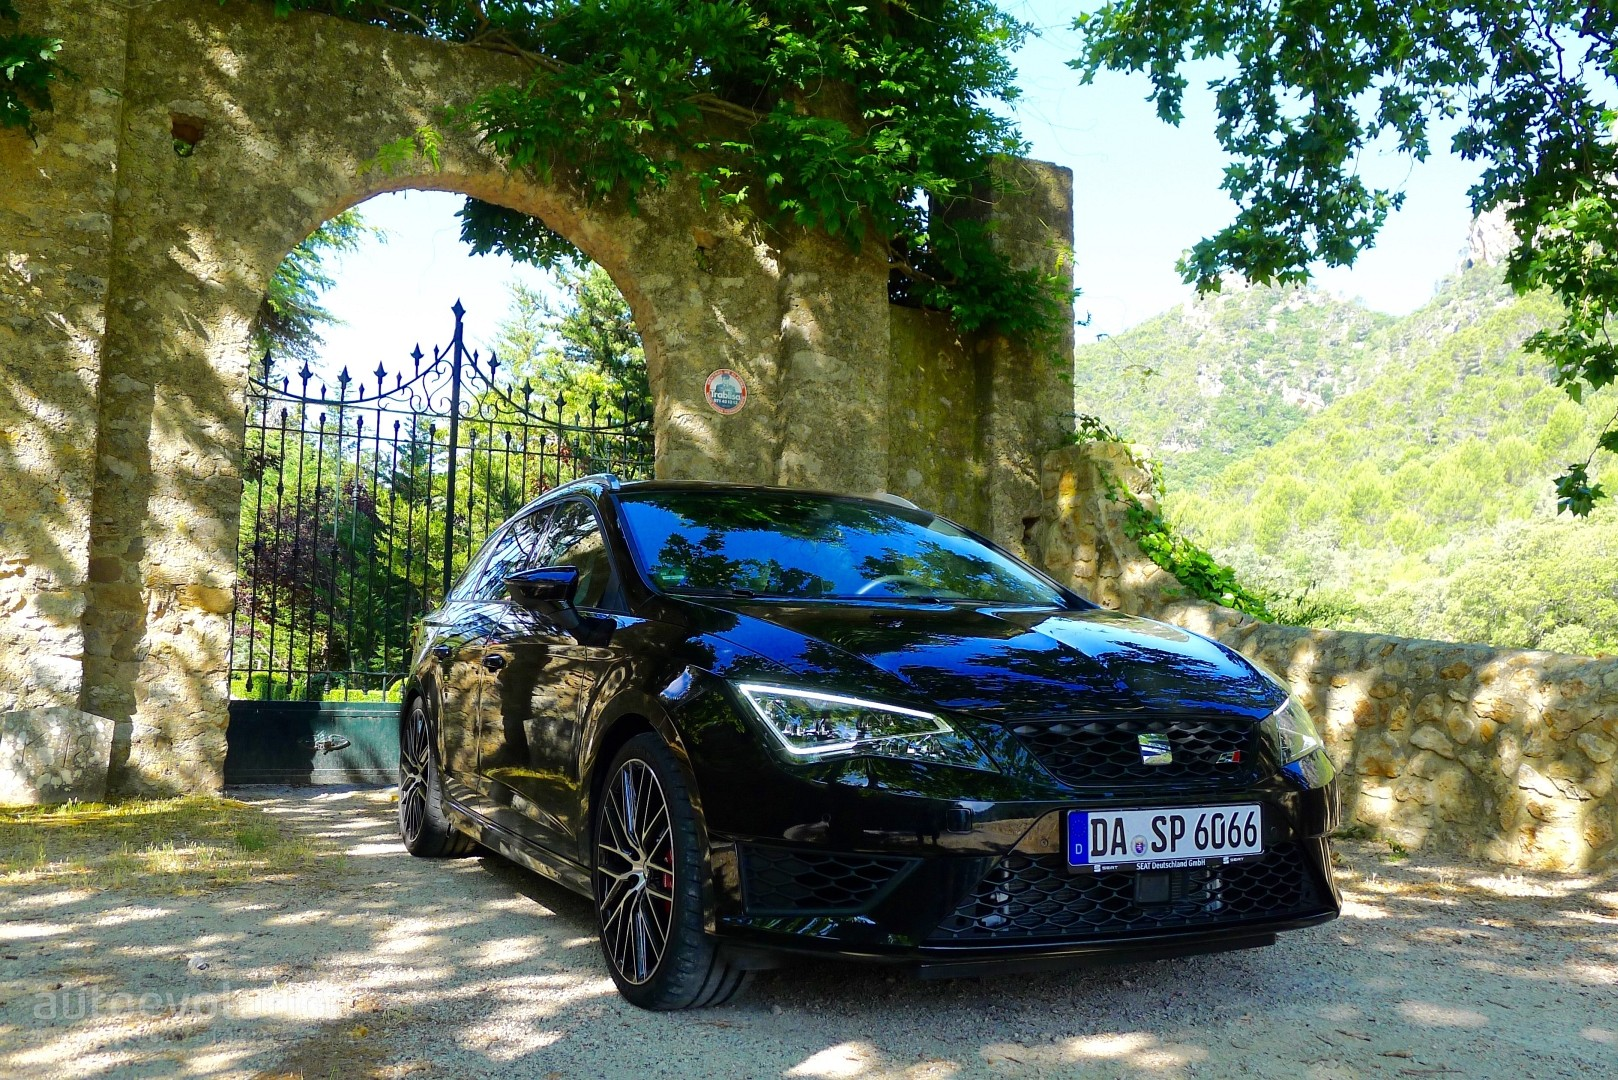 2015 SEAT Leon ST Cupra Full HD Wallpapers: Welcome to ...